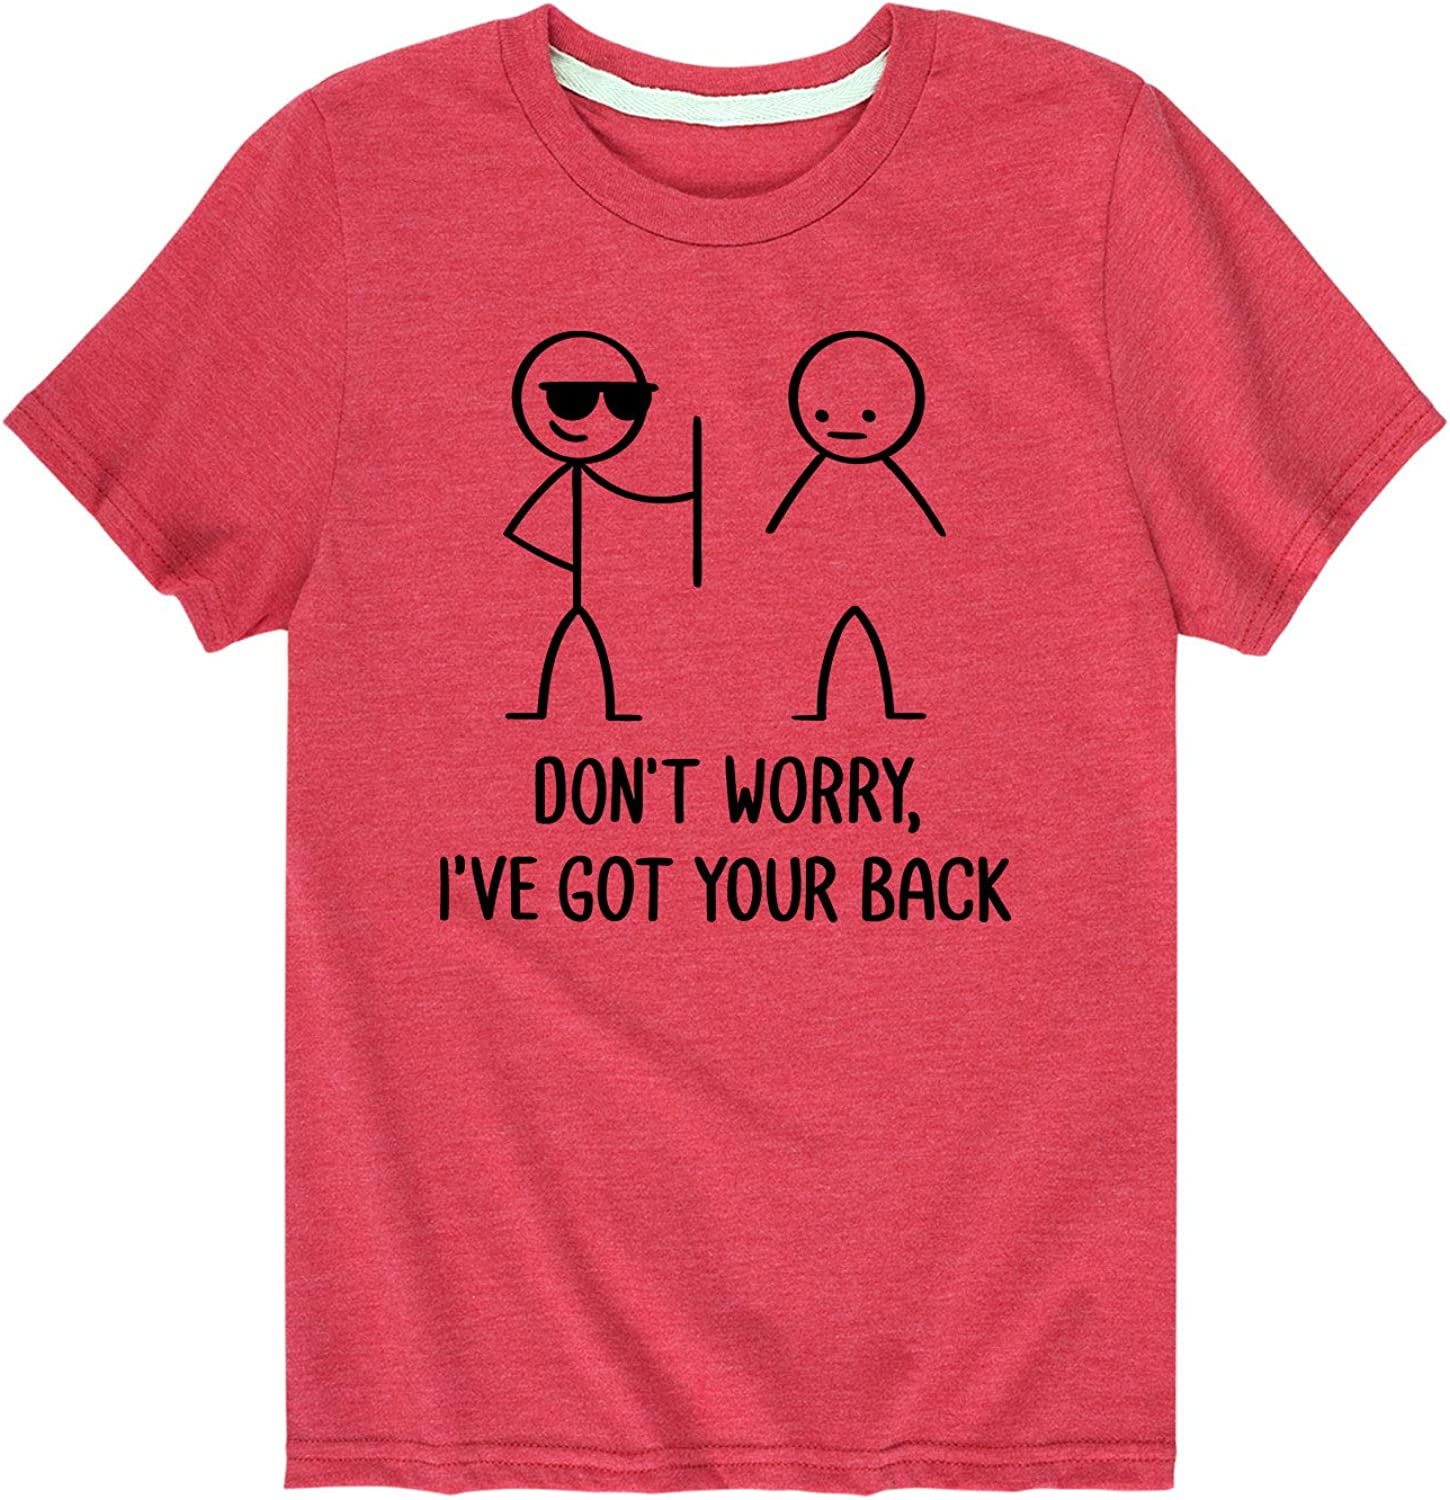 Instant Message Don't Worry Ive Got Your Back - Toddler and Youth Short Sleeve Graphic T-Shirt